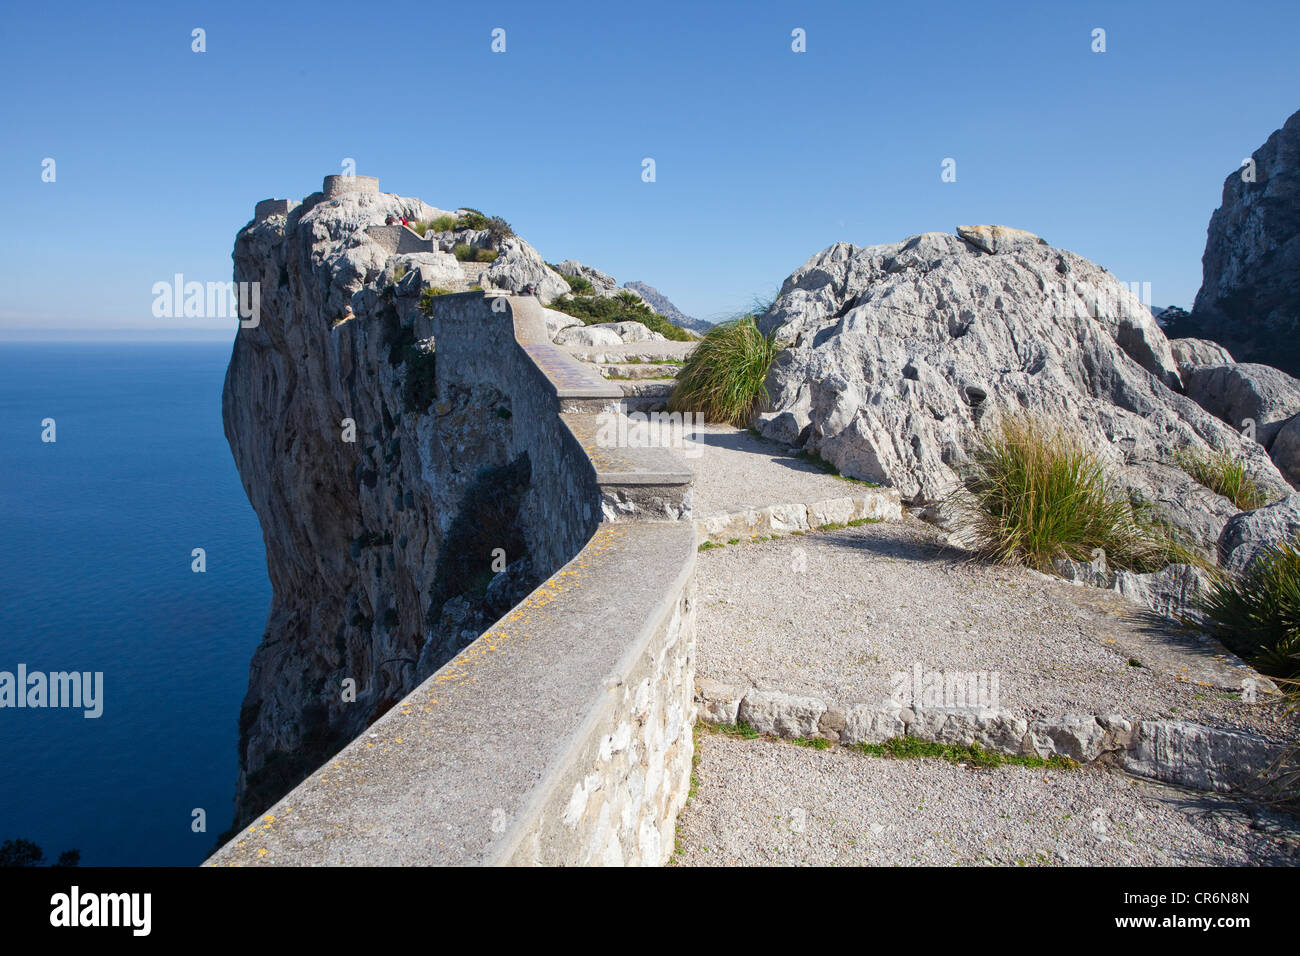 Look-out point of Mirador de Mal Pas, on the road to Cap Formentor, Majorca, Balearic Islands, Spain, Mediterranean - Stock Image